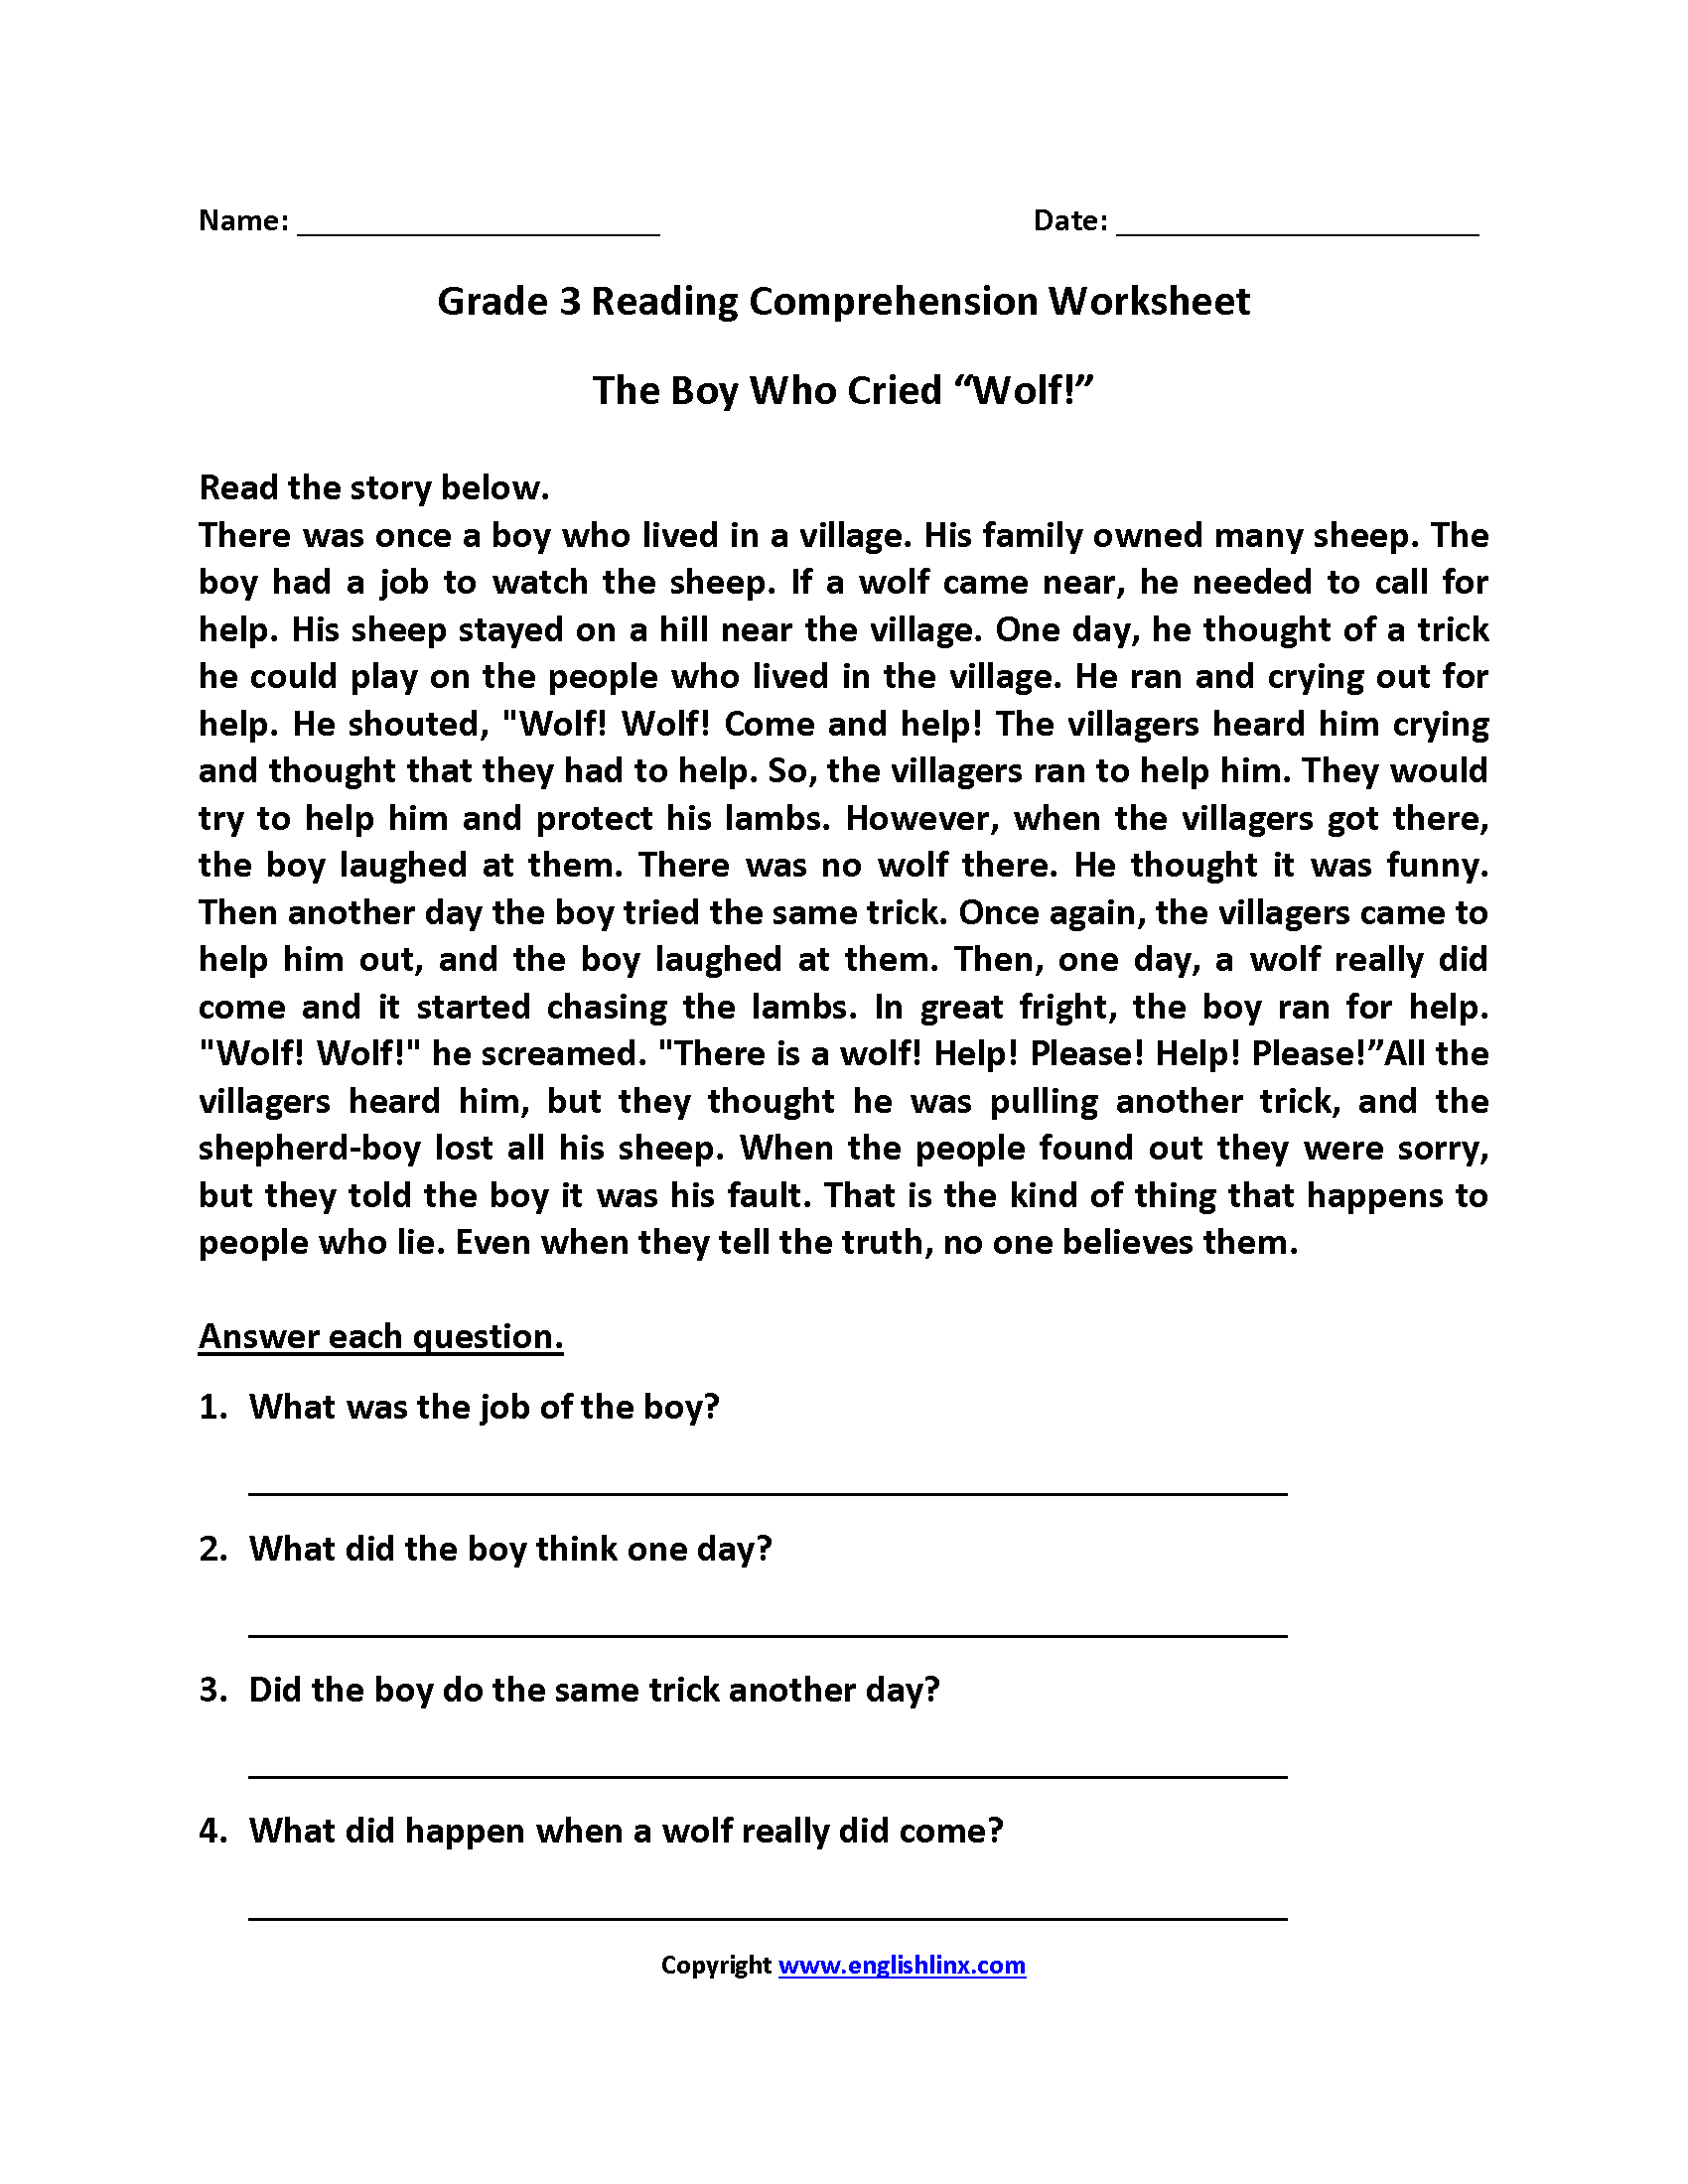 Worksheets Reading Worksheet english worksheets reading worksheets